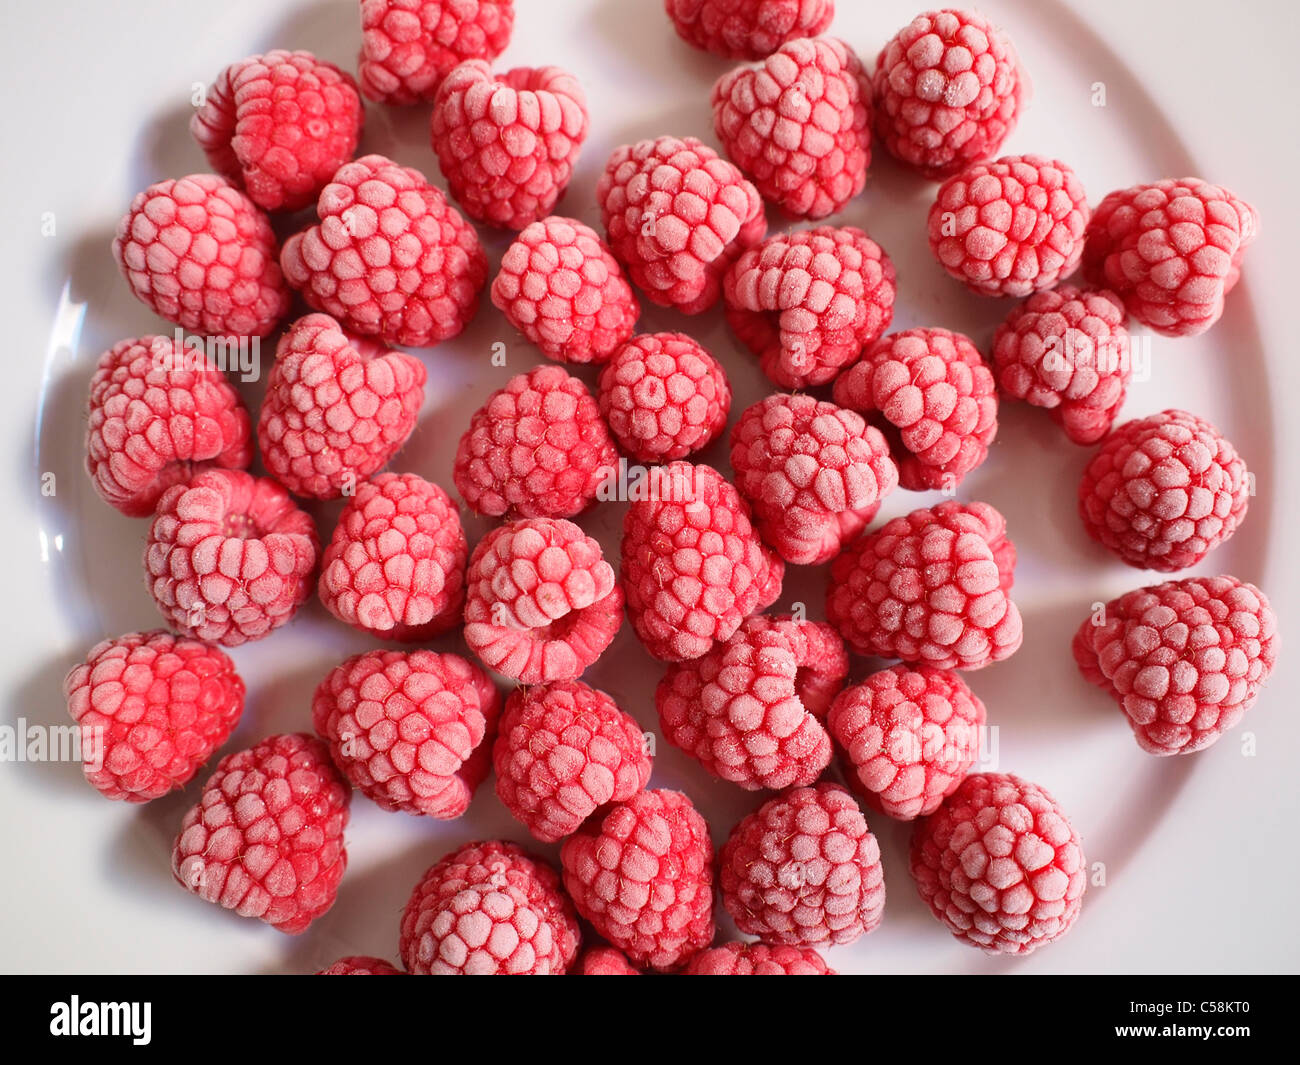 Frozen raspberries on a white plate - Stock Image